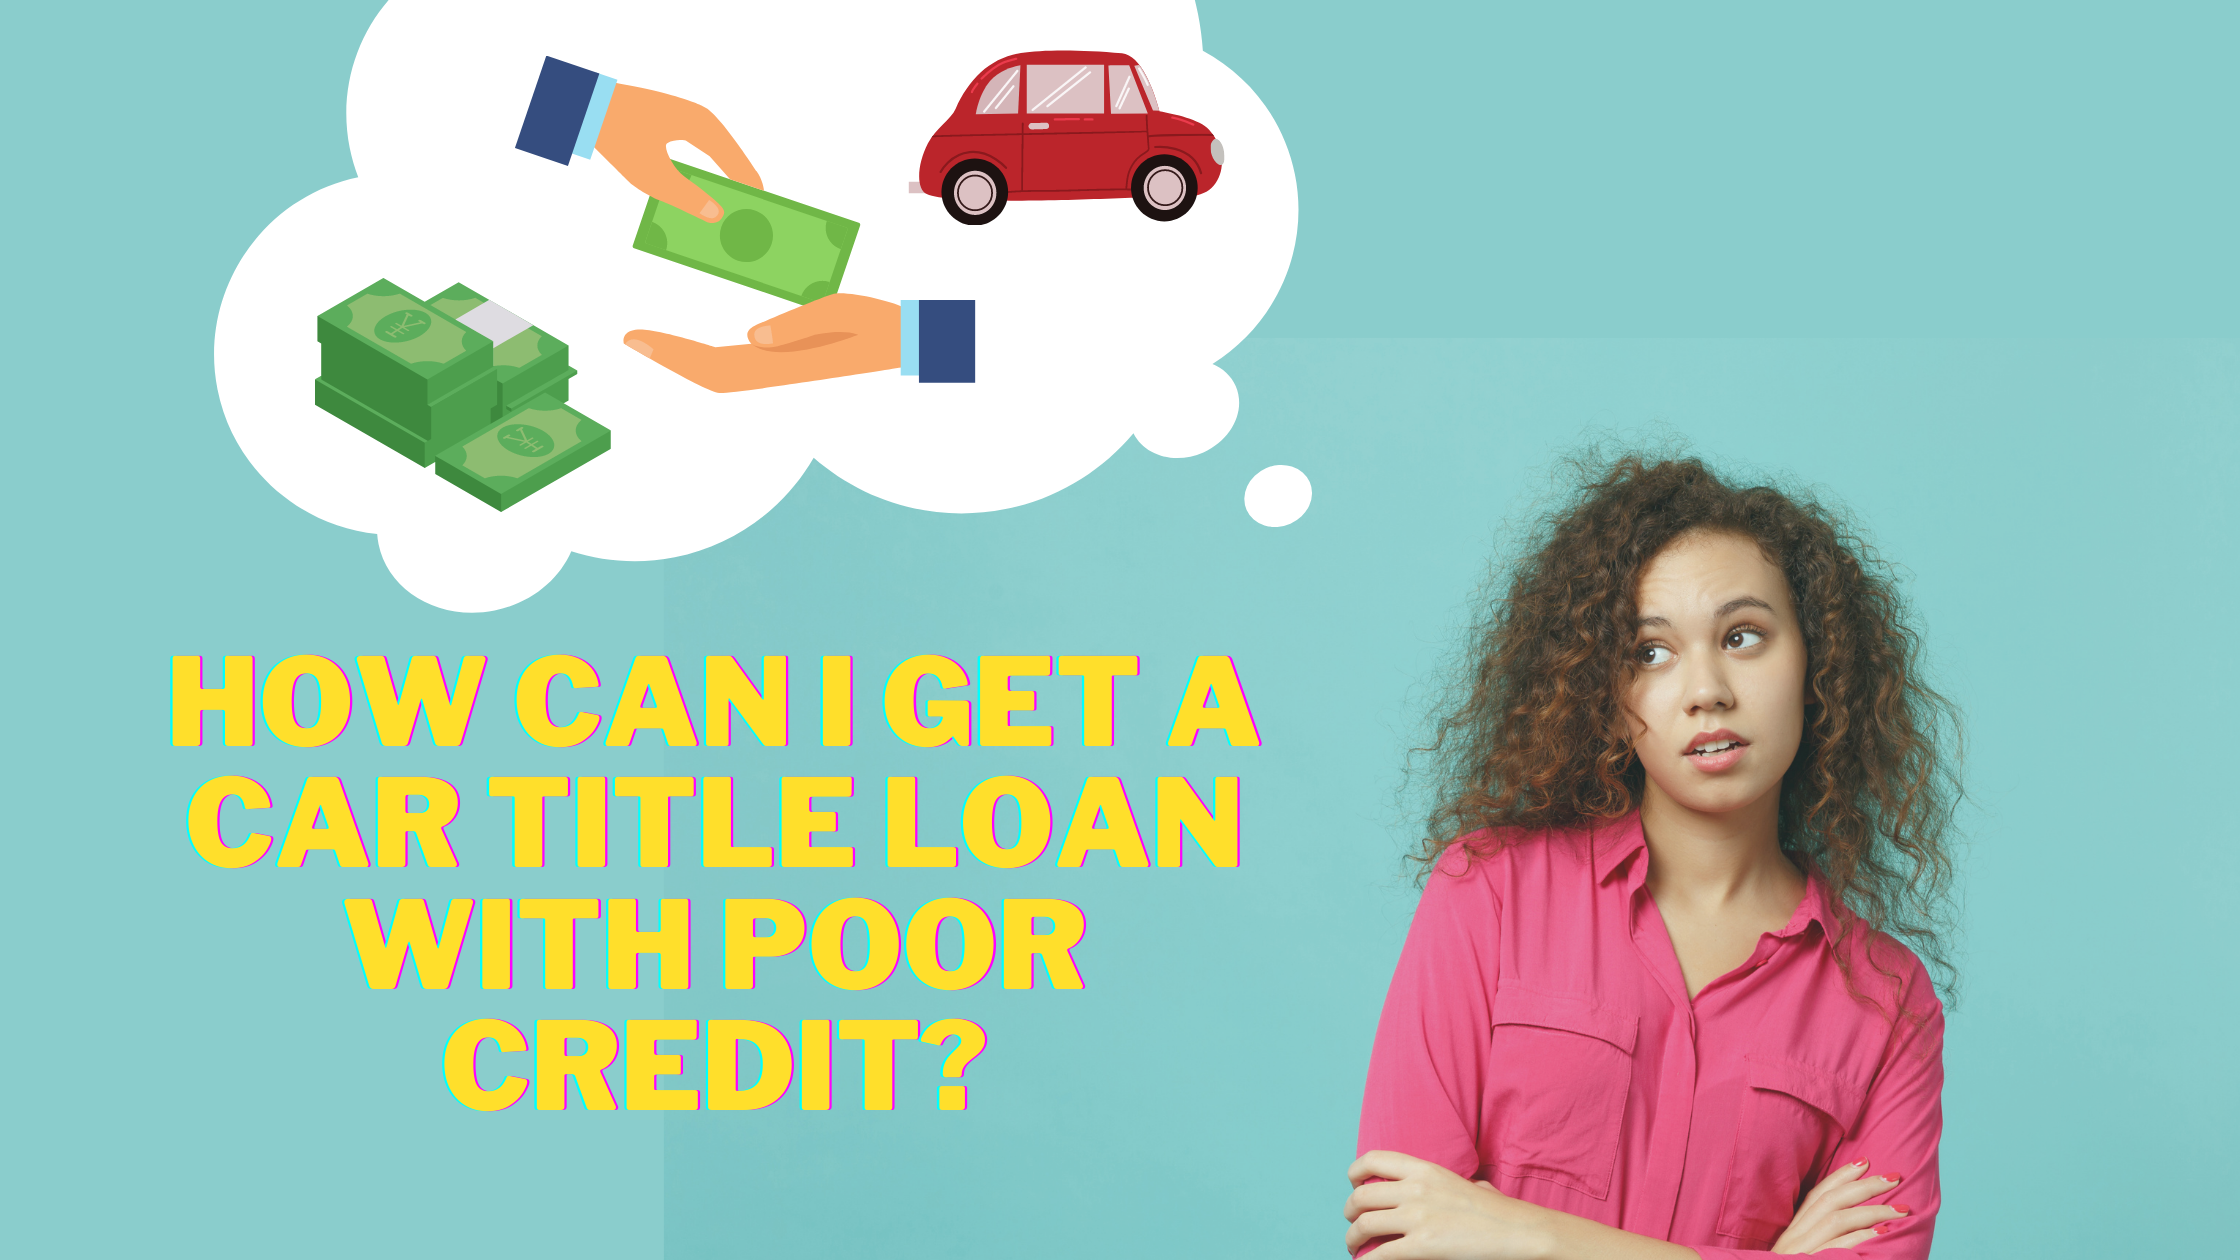 How Can I Get a Car Title Loan With Poor Credit?